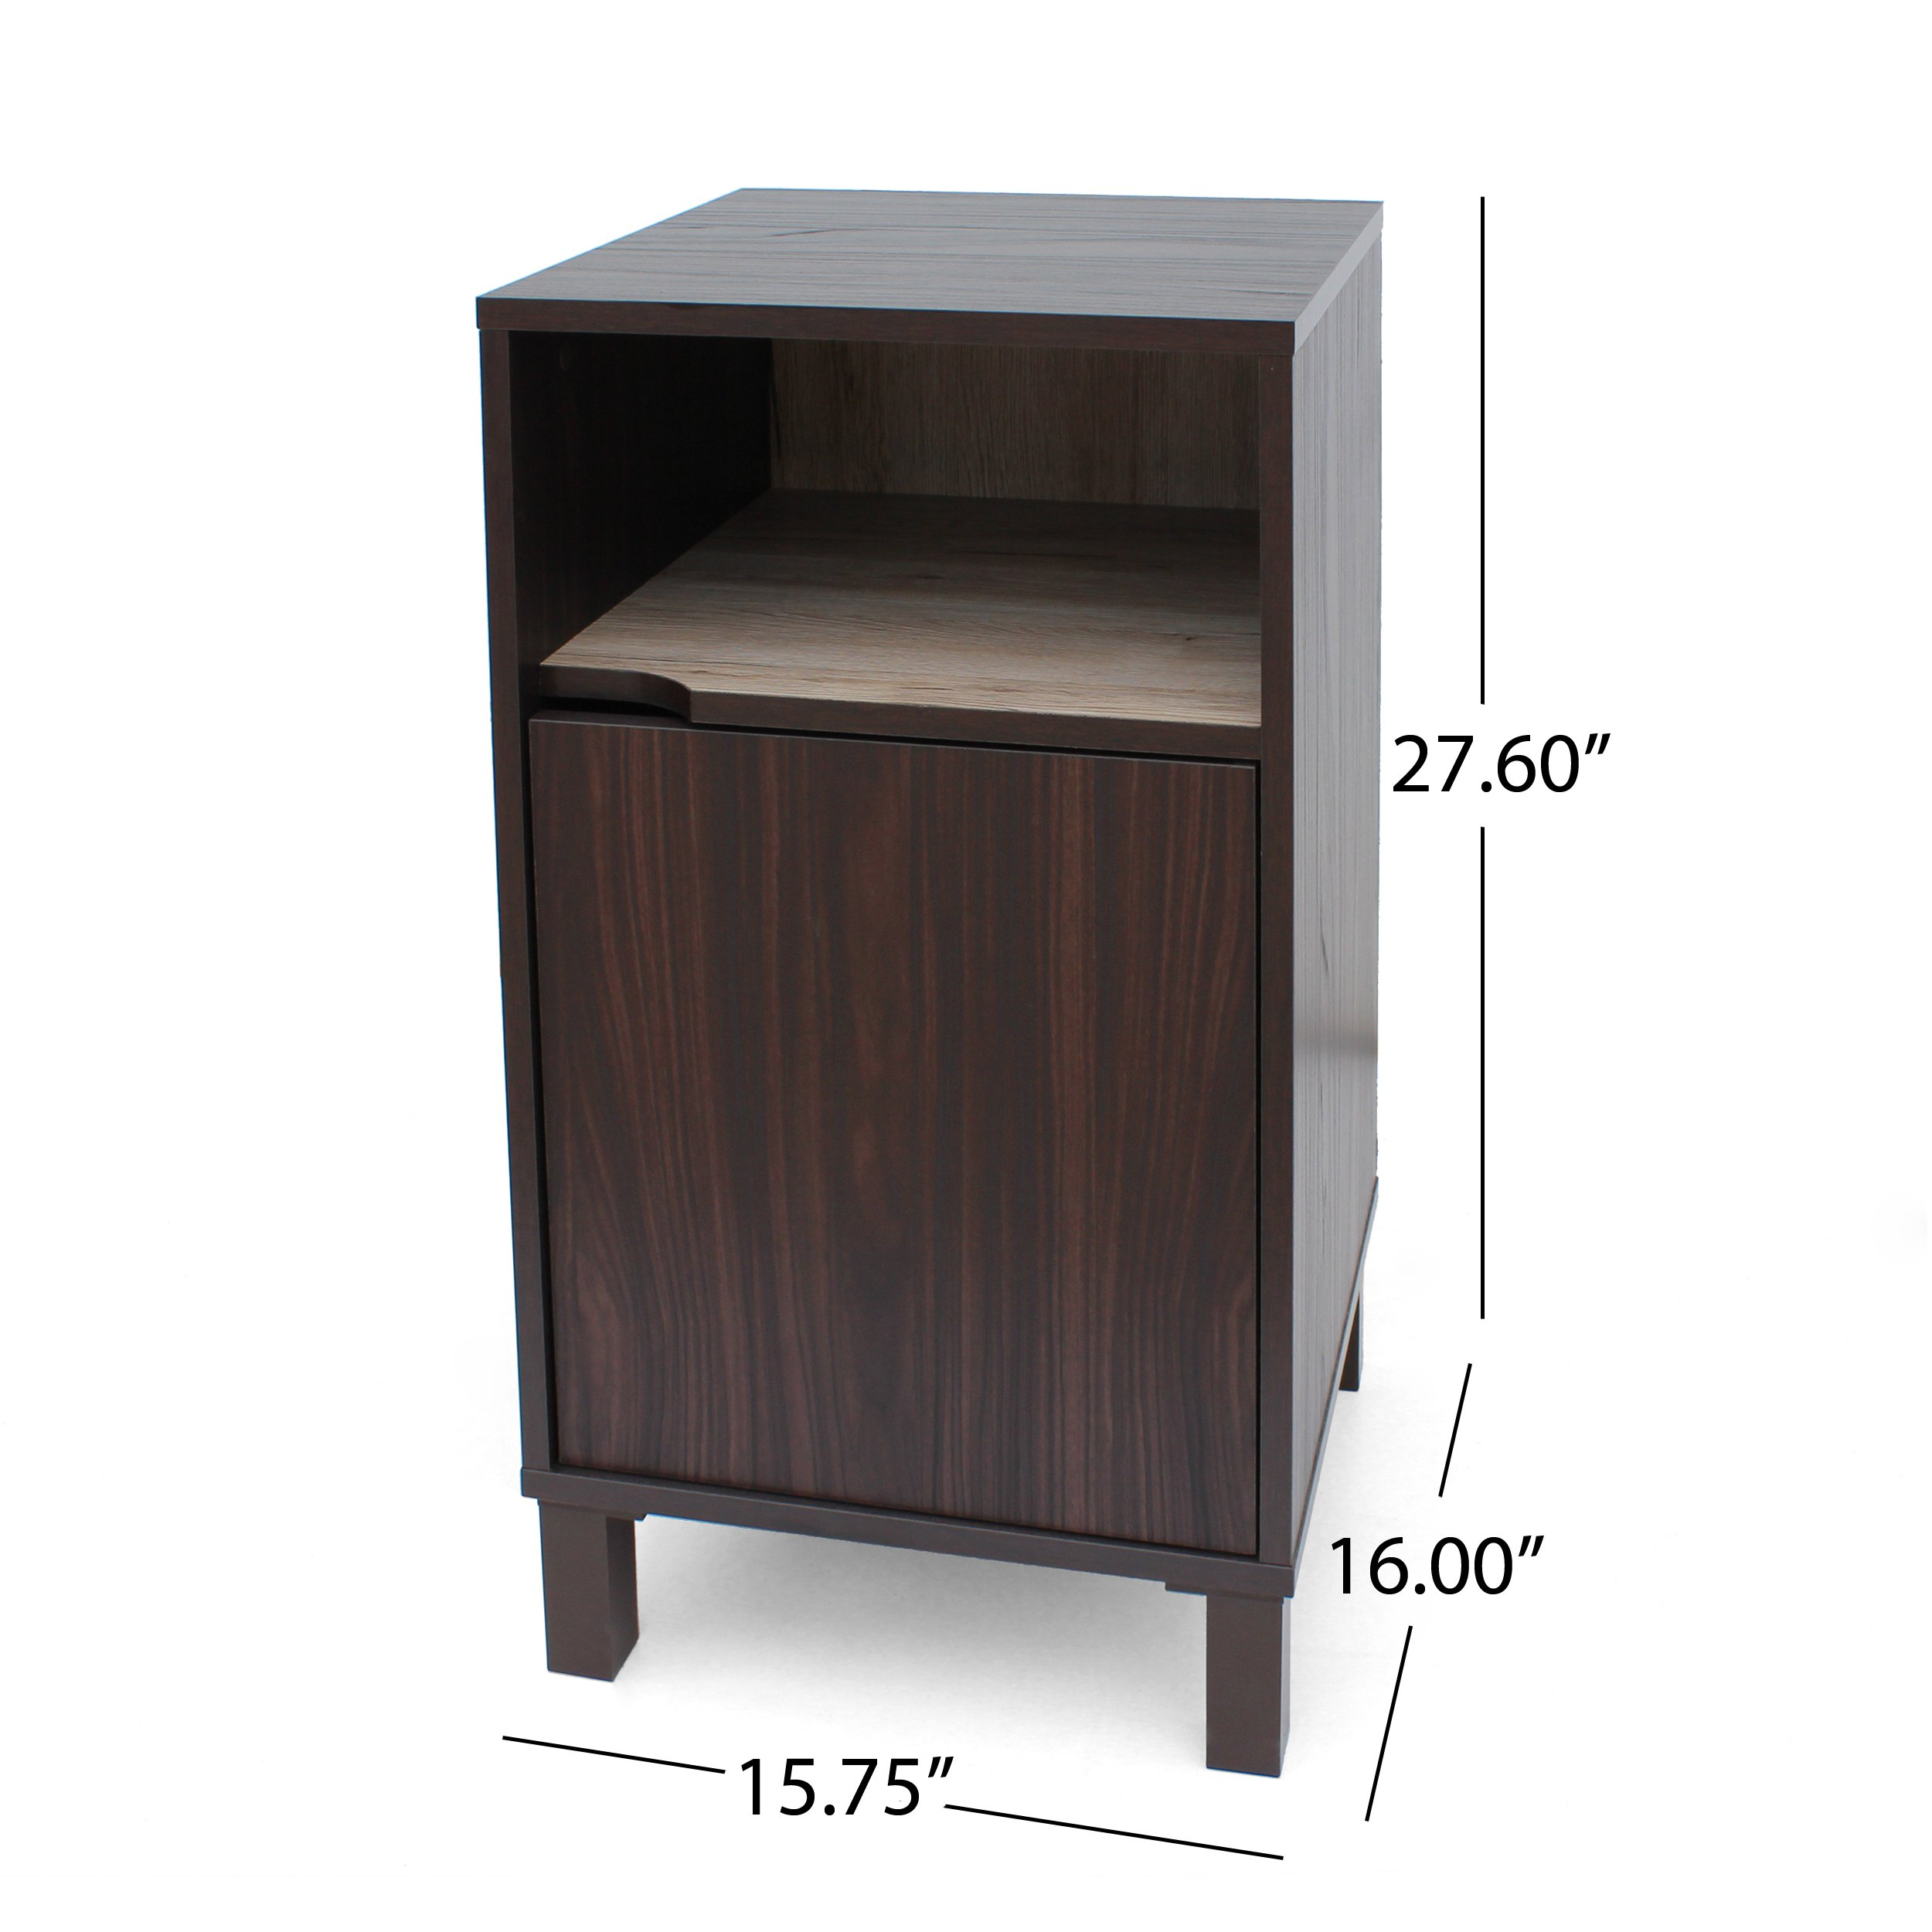 Christopher Knight Home 303655 Linnea Wood Cabinet, Walnut/Sanremo Oak/Brown by Christopher Knight Home (Image #5)